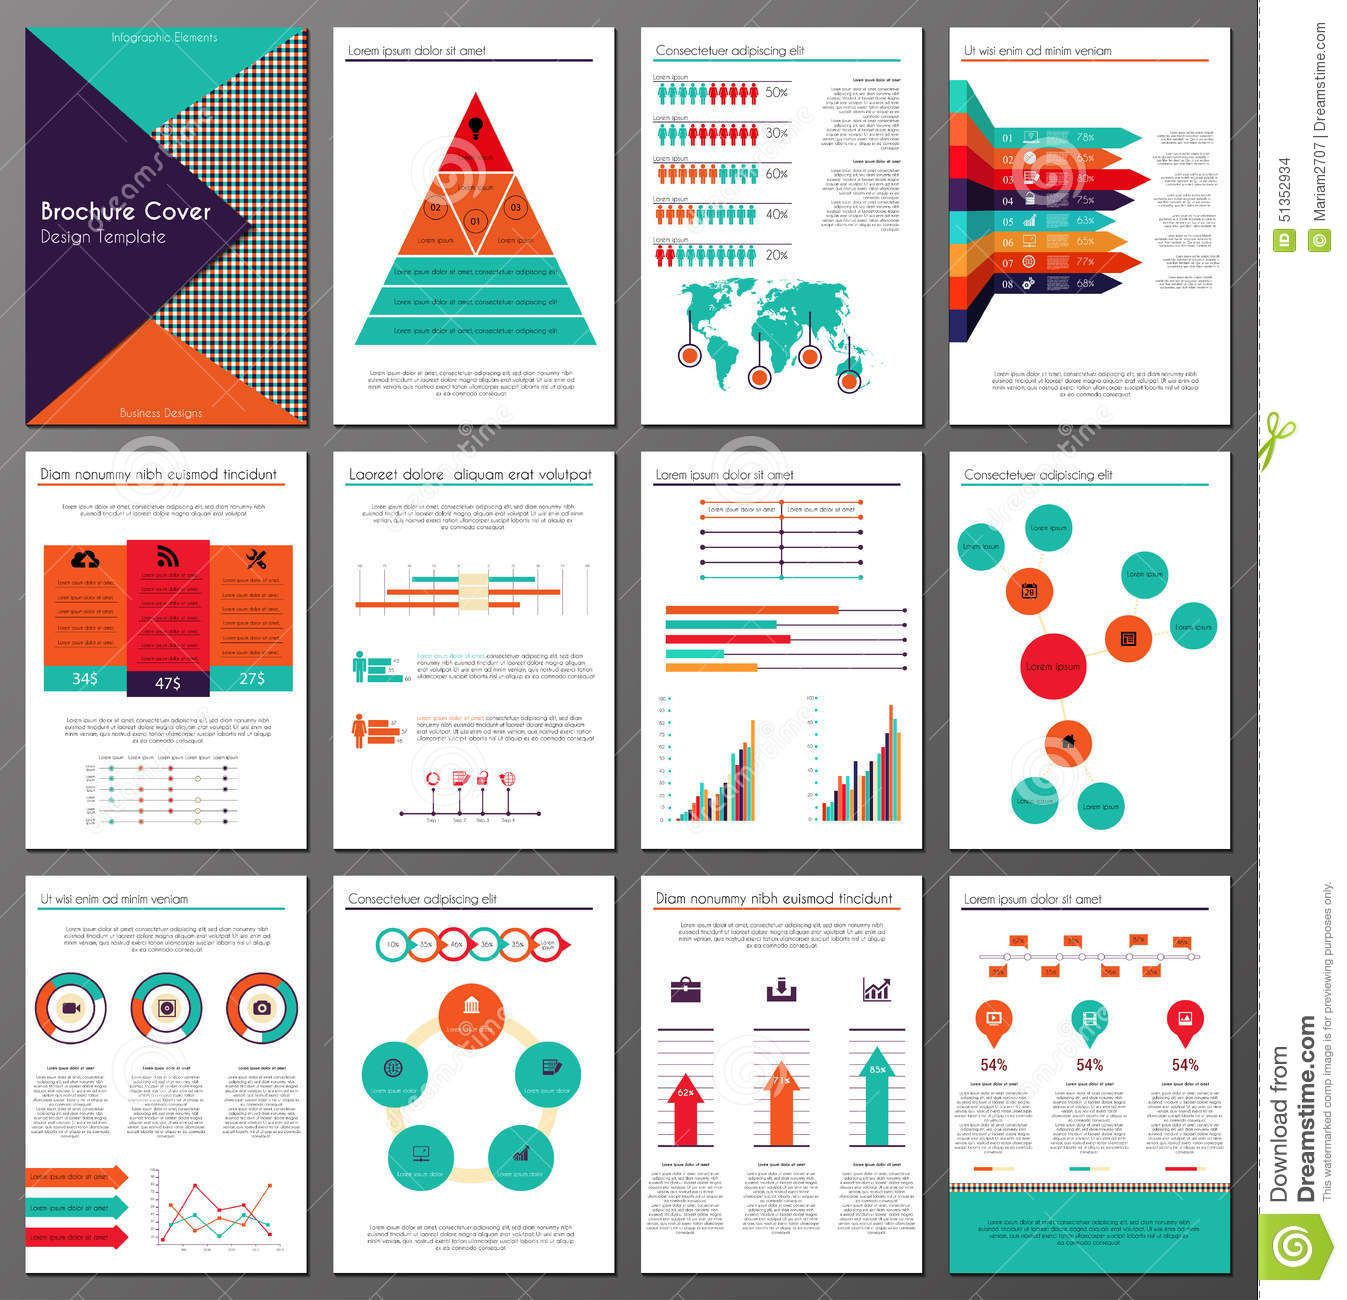 Brochure Design Infographic  Google Search  Infographic Brochure